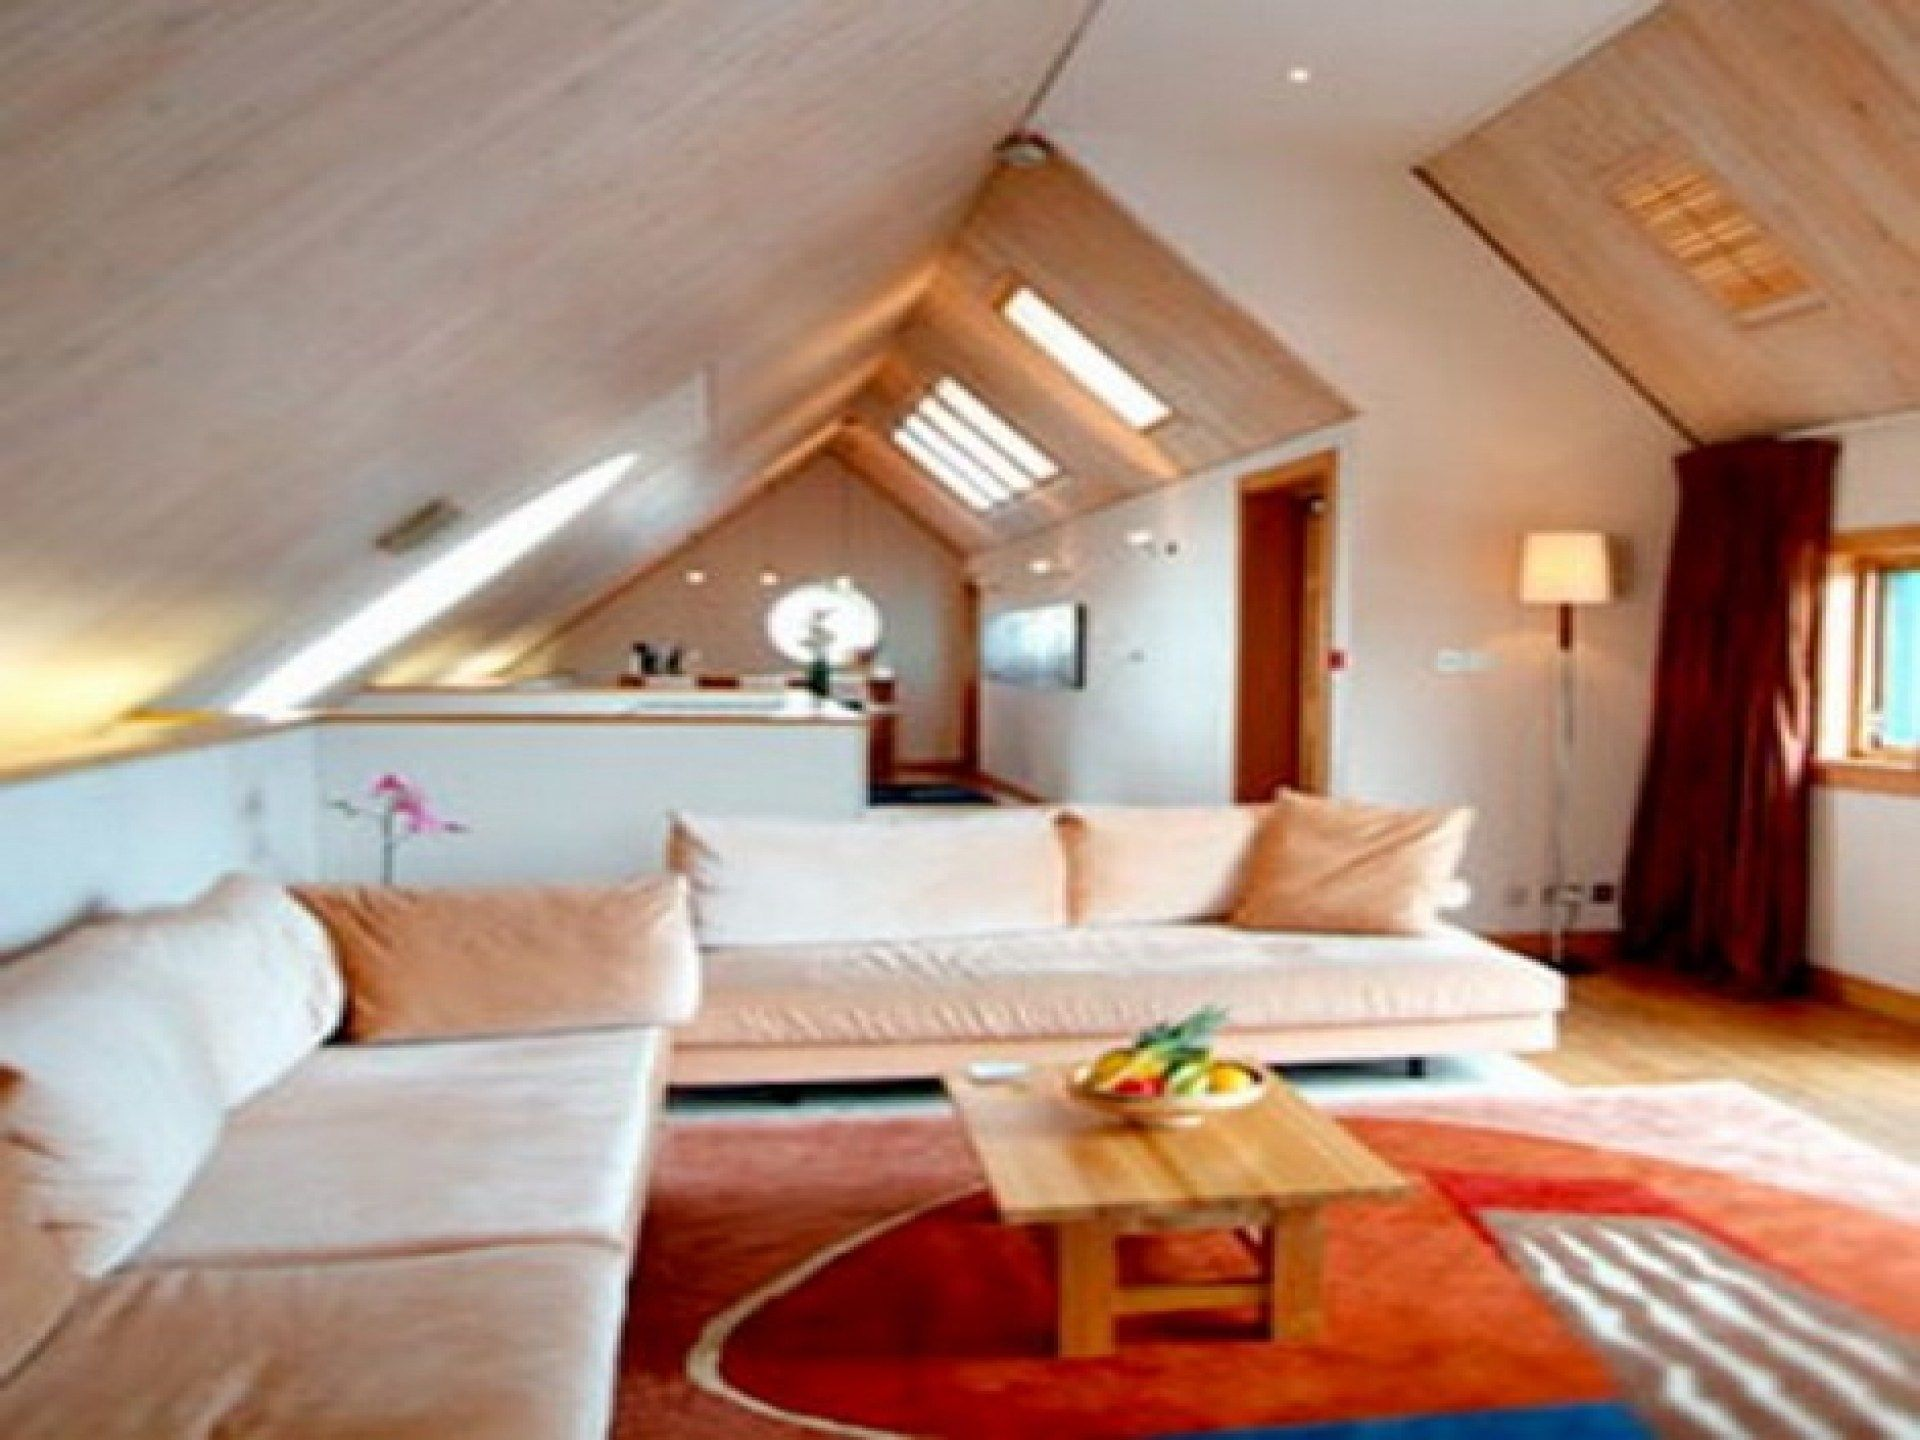 attic decorating ideas bright and modern 6 loft room for